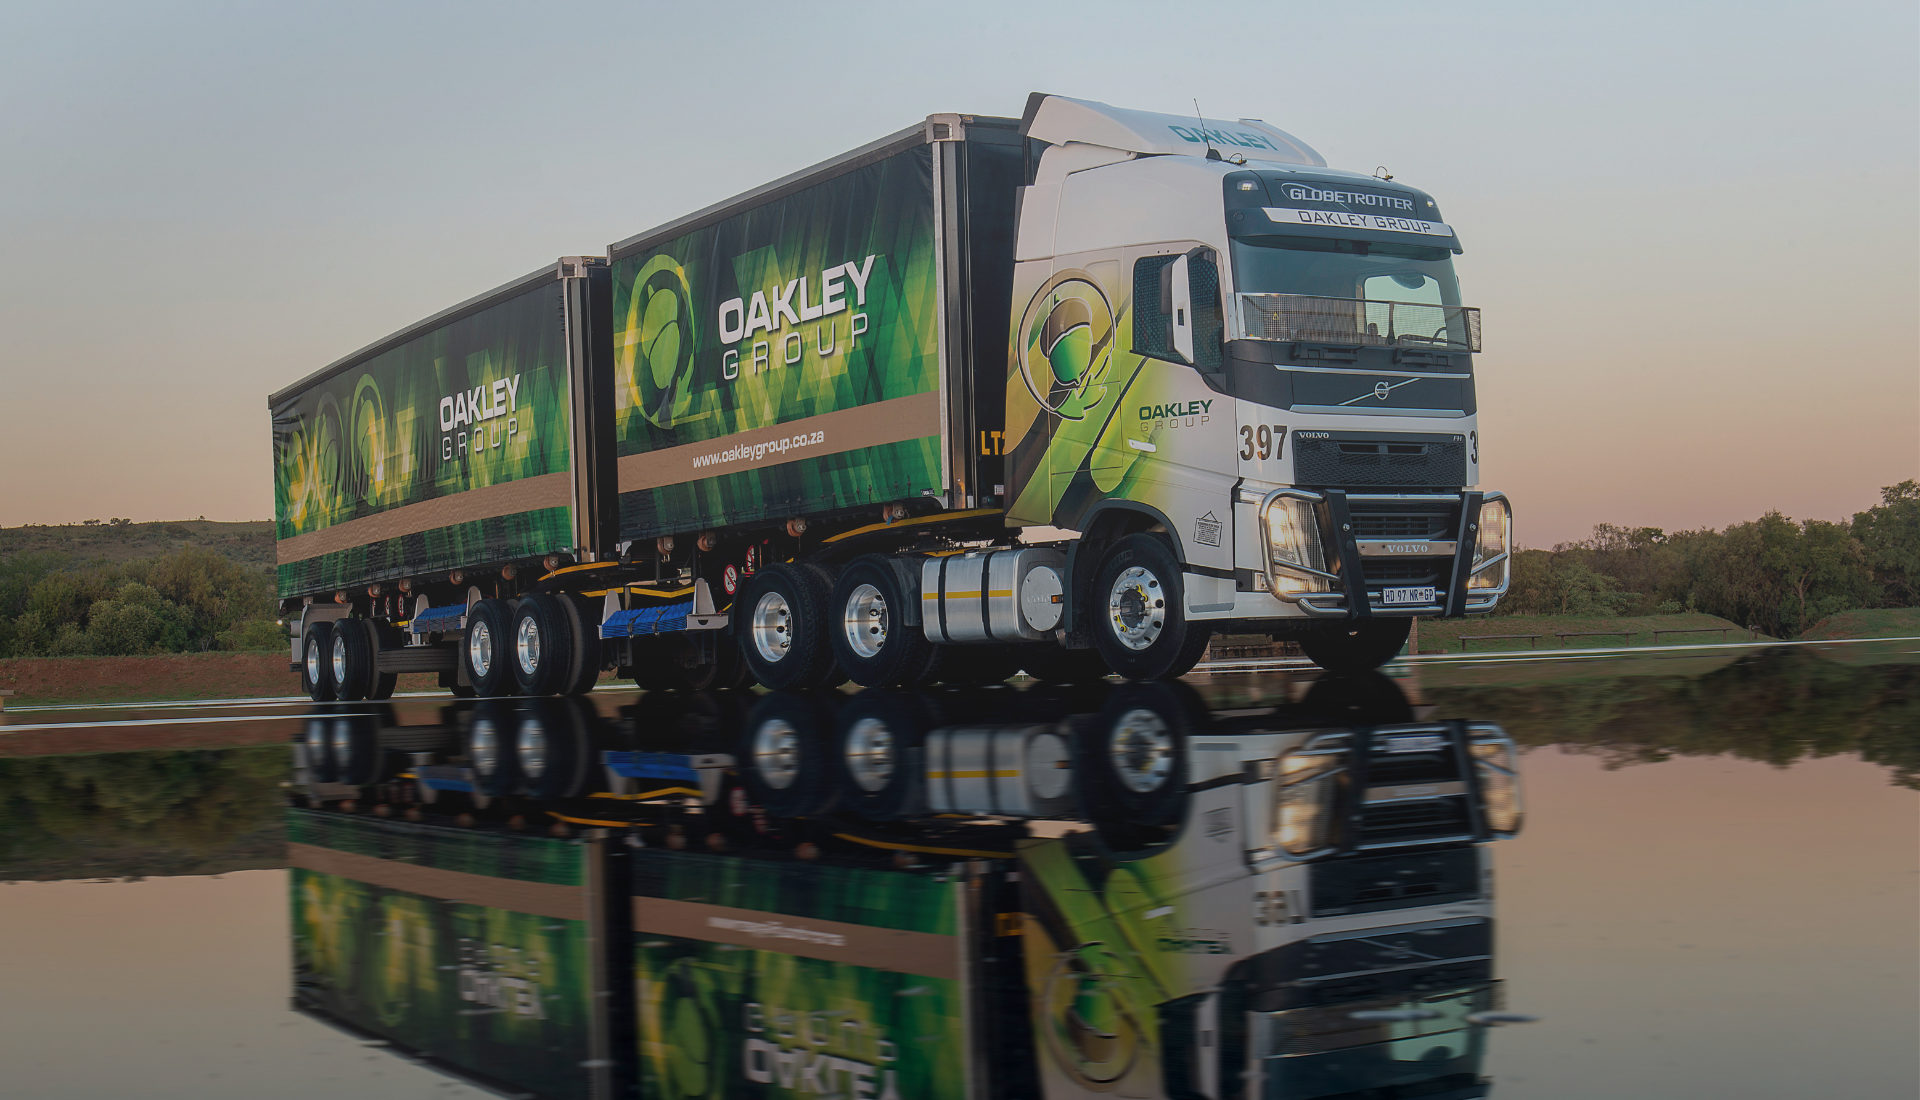 Oakley Group Truck transport day